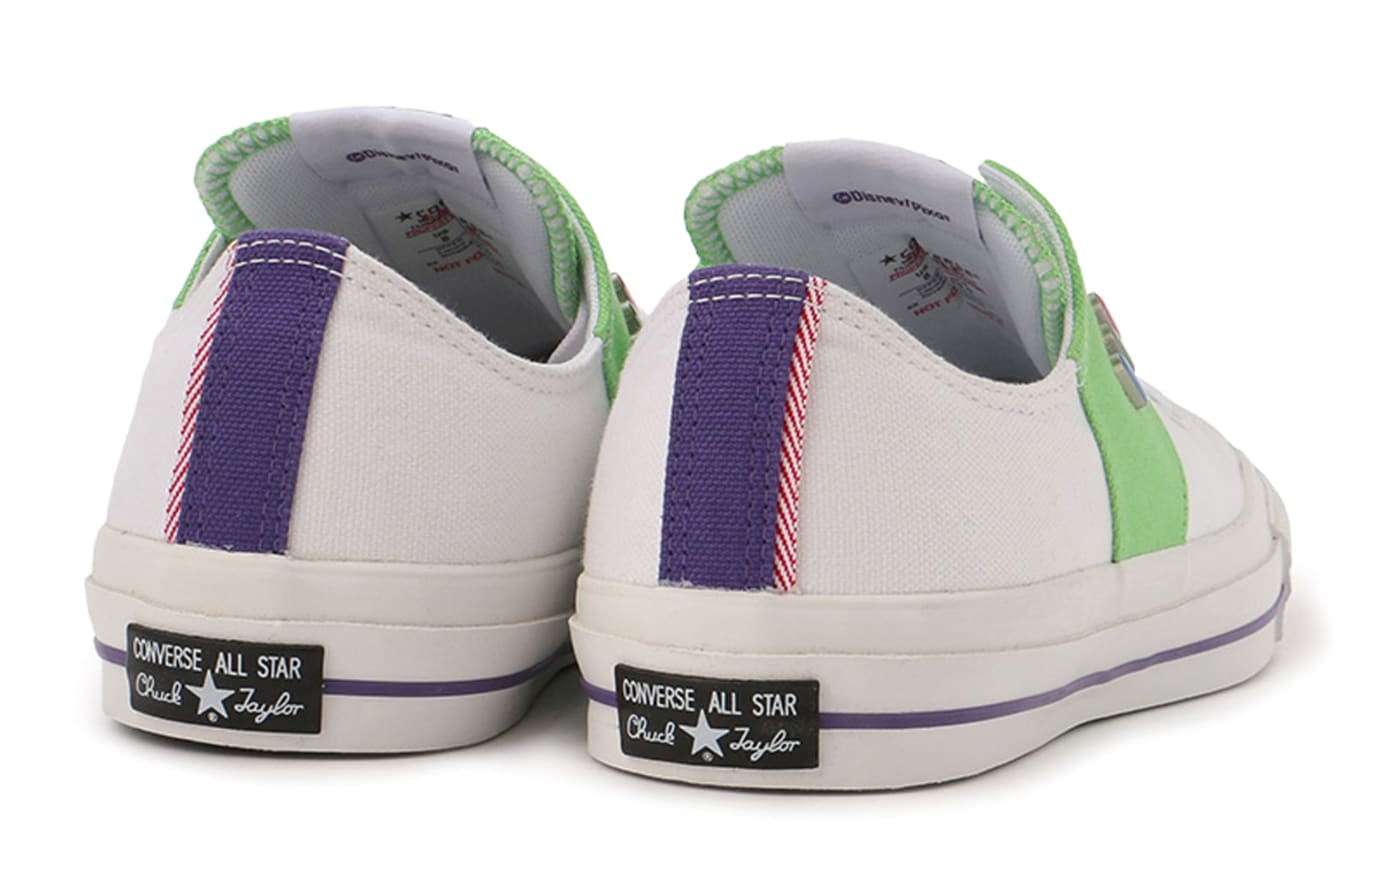 Toy Story x Converse Chuck Taylor All Star Low 32862650 2